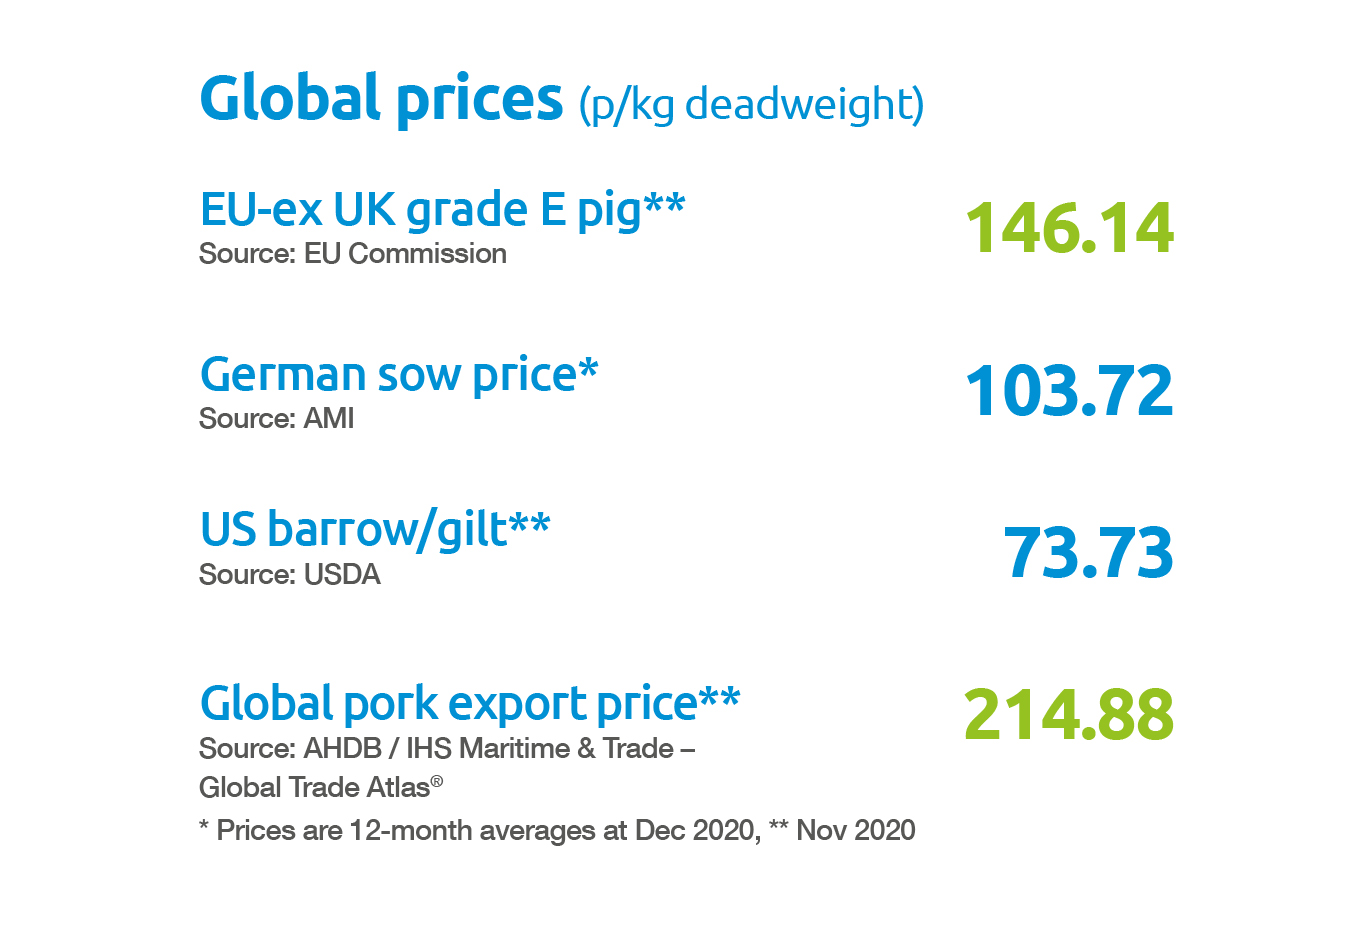 Pork global prices